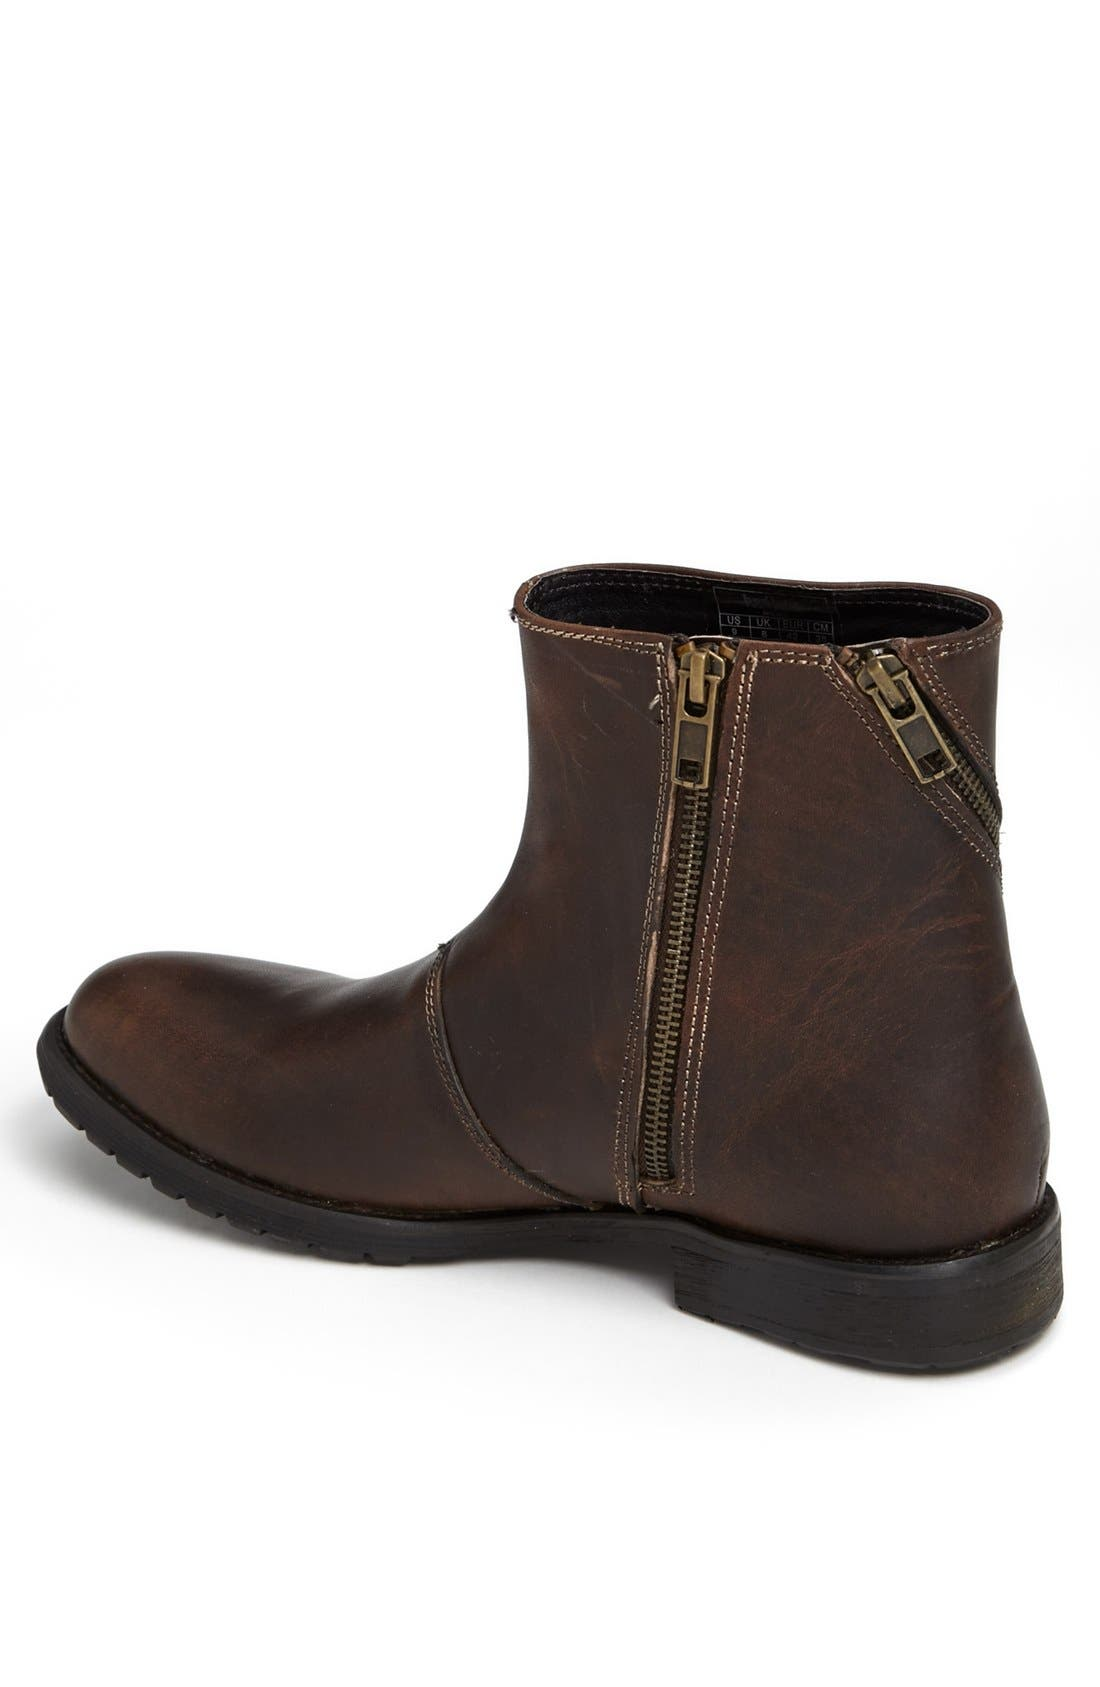 Alternate Image 2  - Bed Stu 'Harrison' Zip Boot (Men)